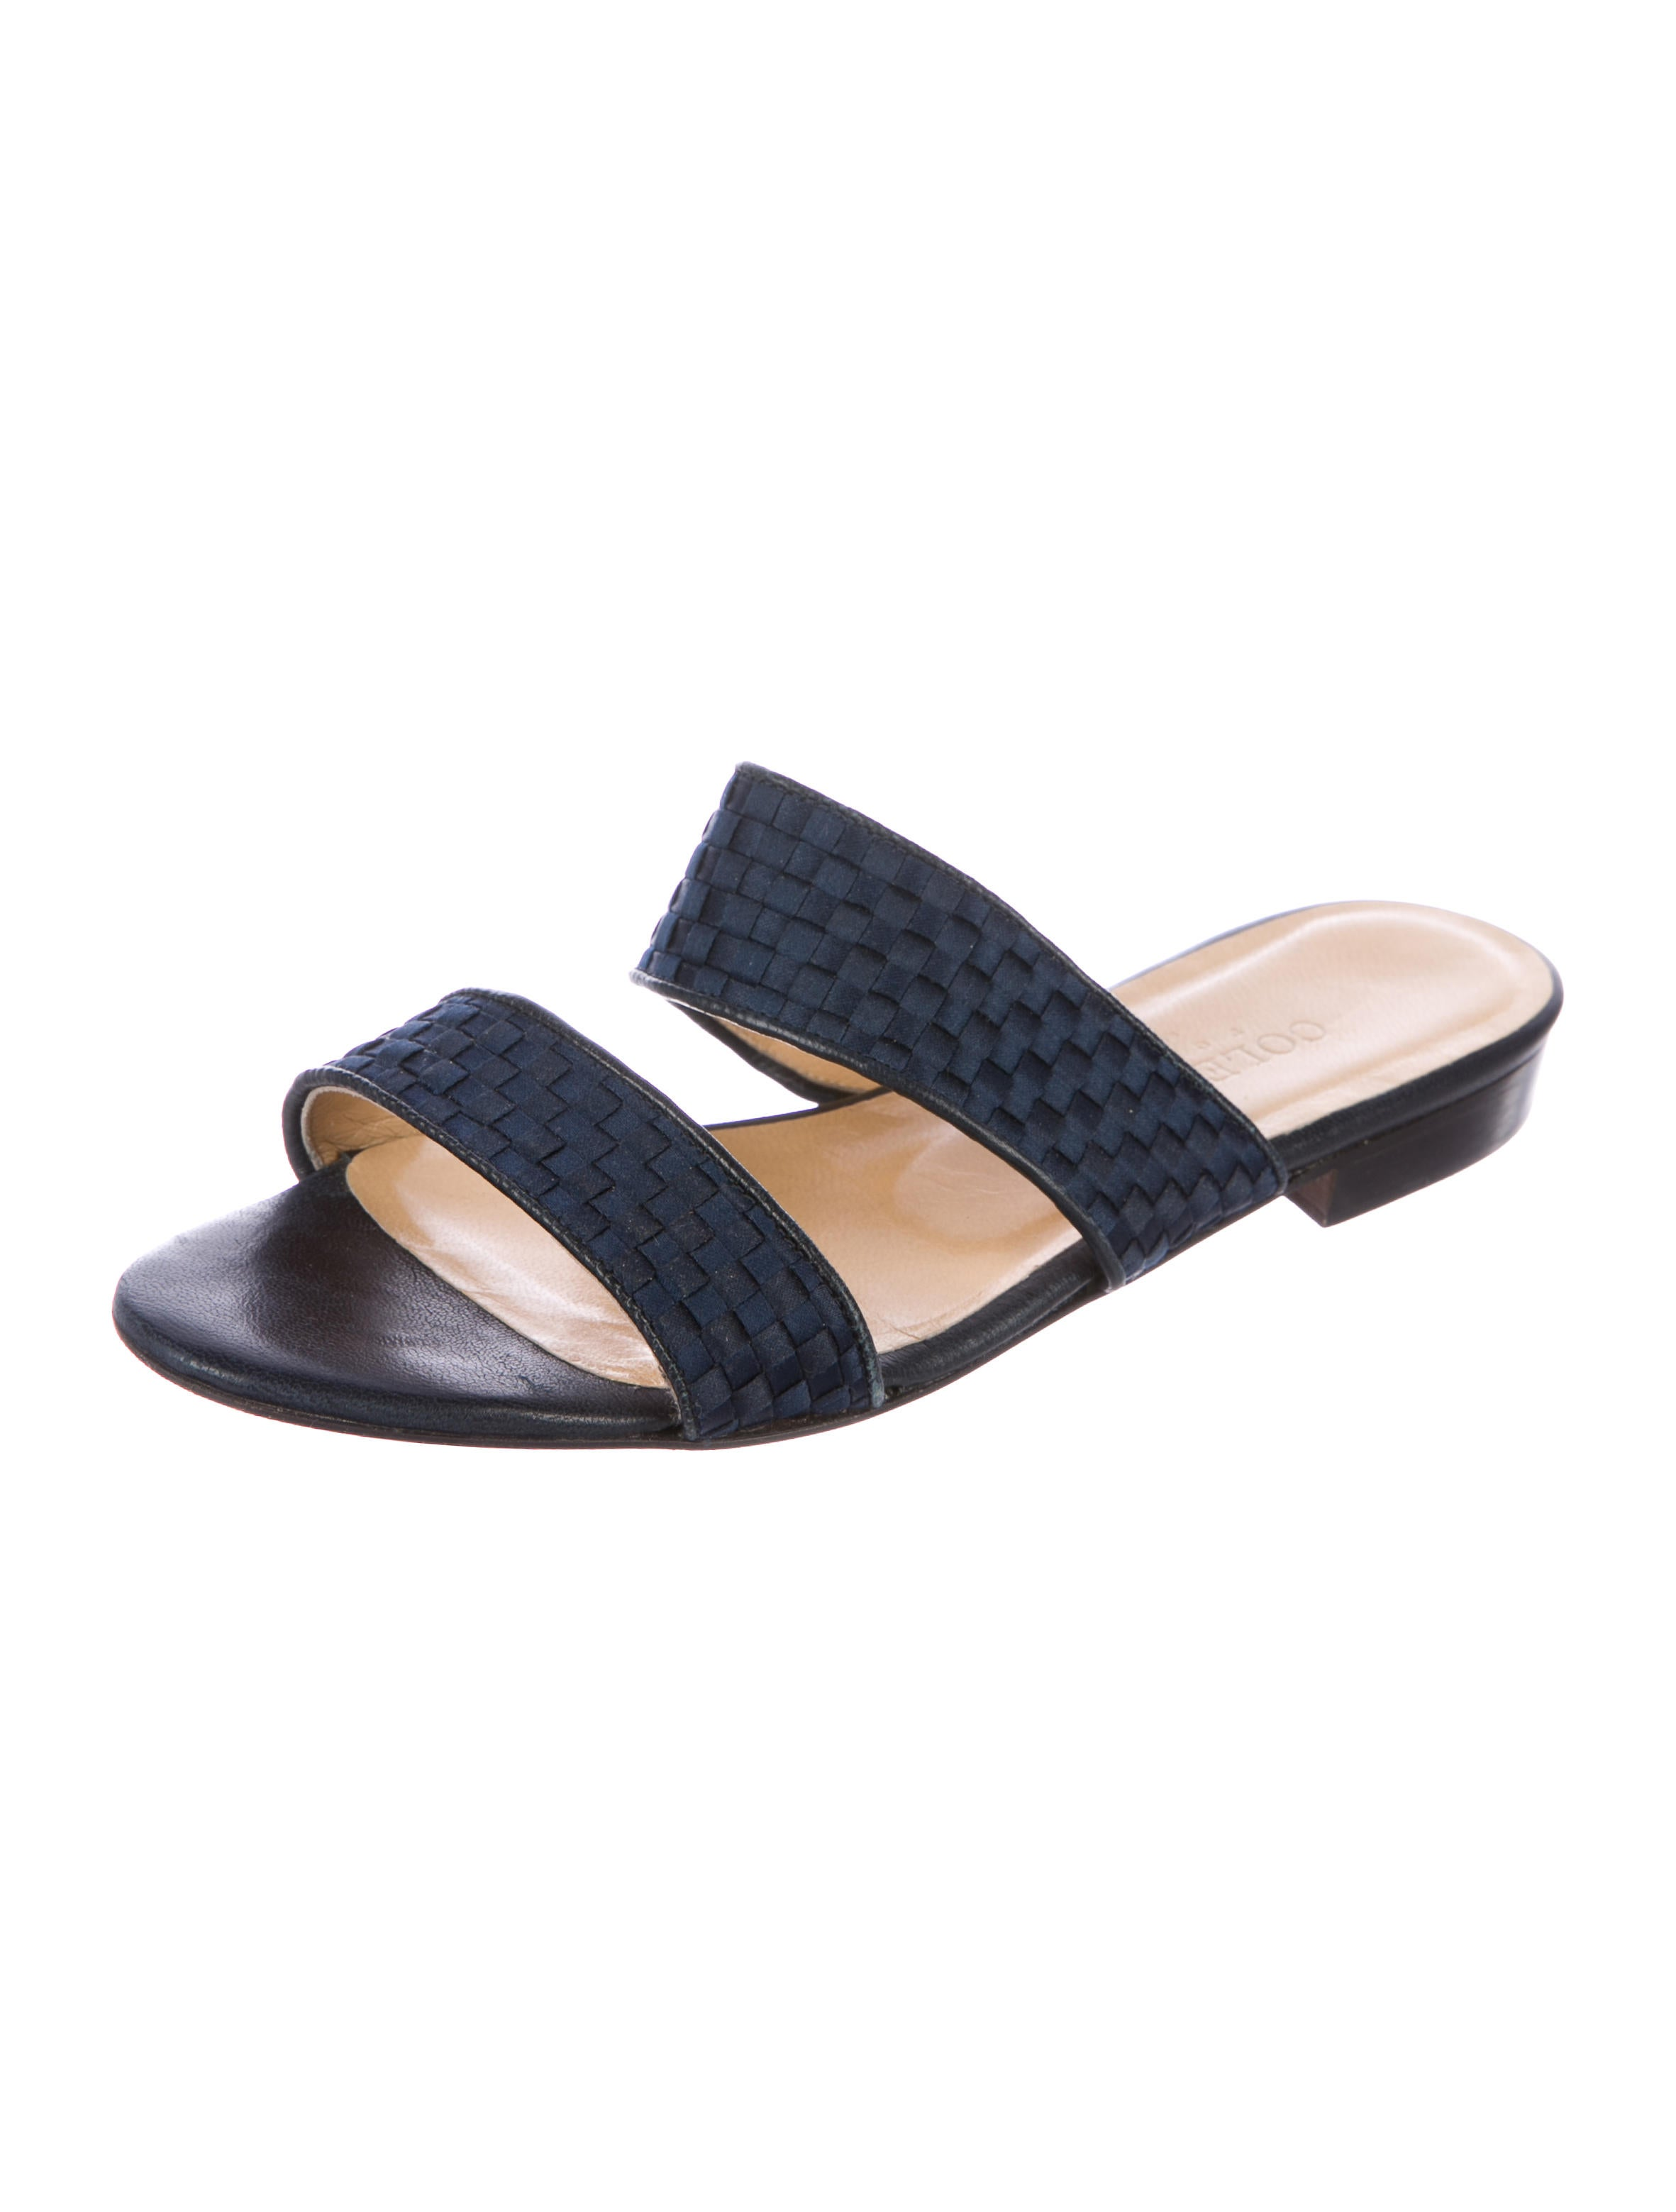 Cole Haan Woven Satin Slide Sandals outlet 100% original e9hrmc